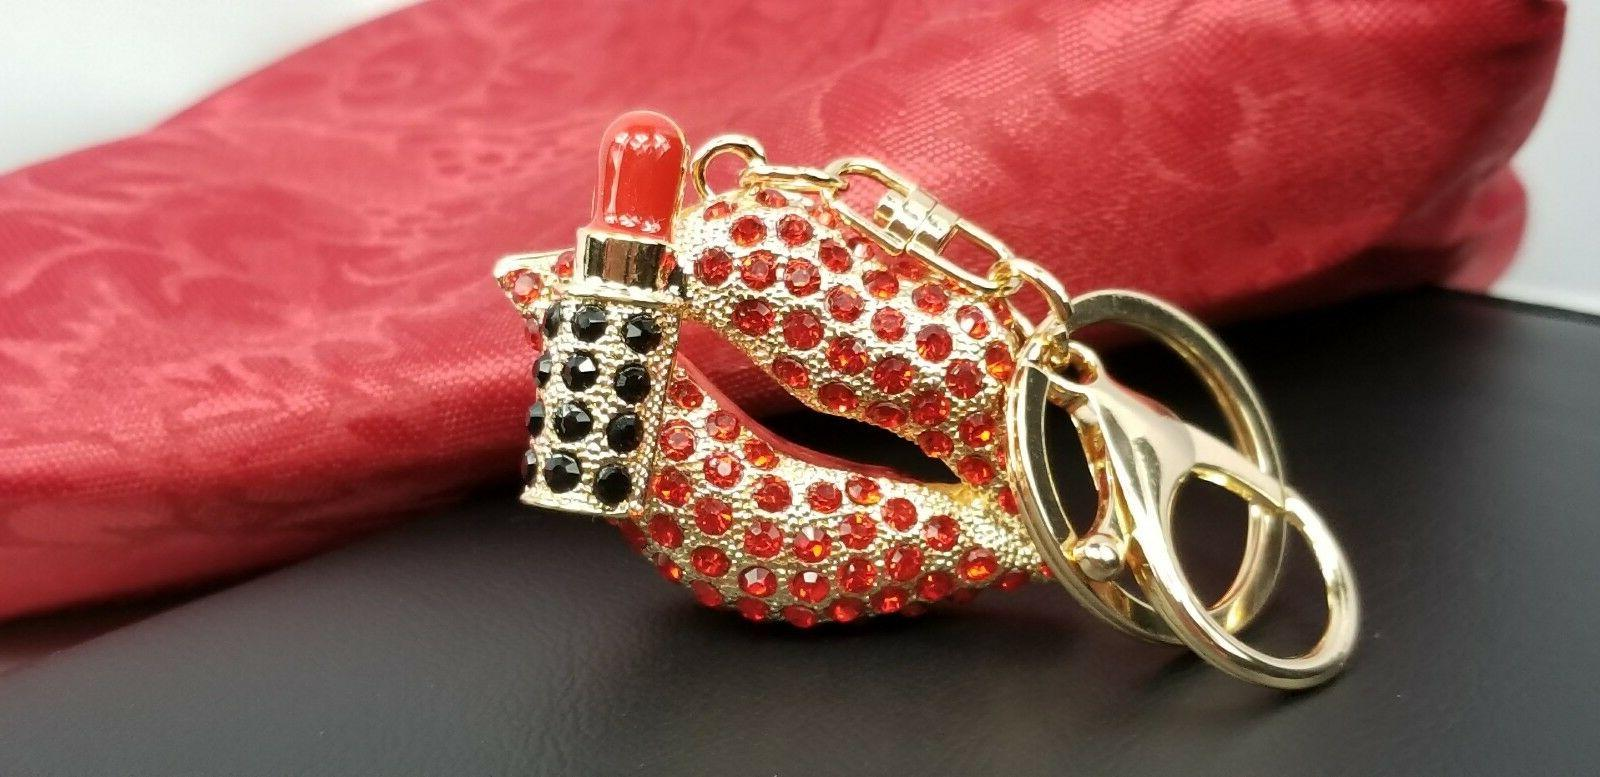 Key fashionable accessories for girls